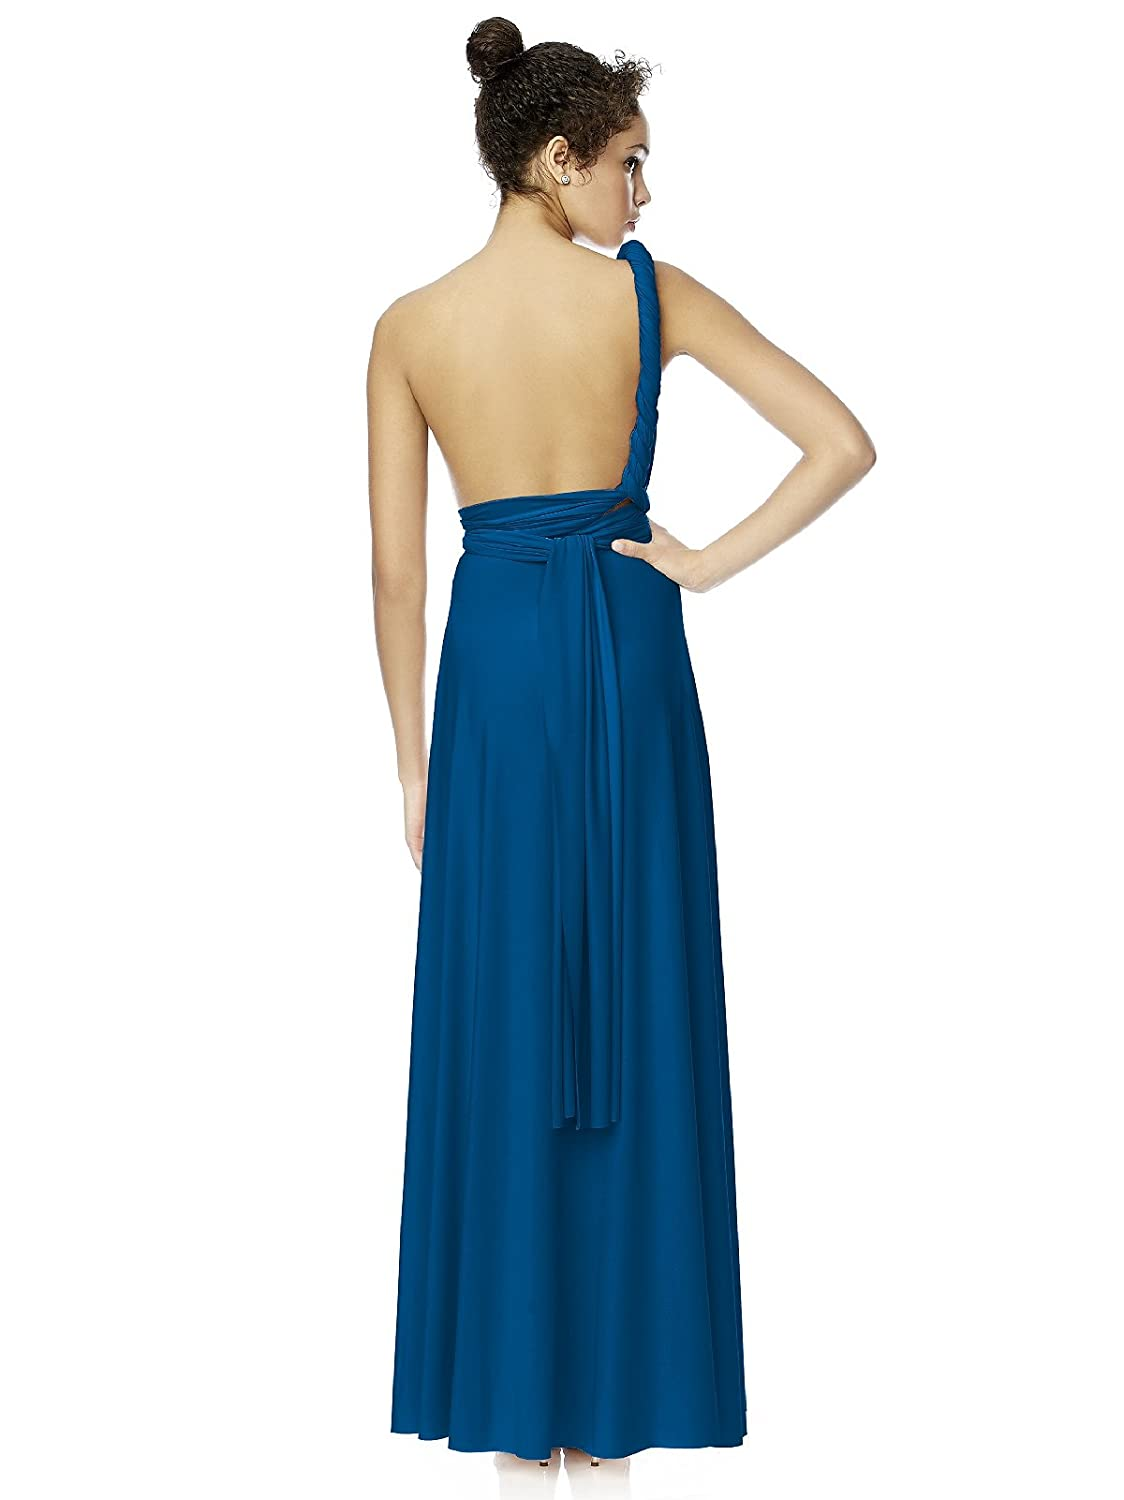 Womens full length matte jersey convertible twist dress by dessy womens full length matte jersey convertible twist dress by dessy at amazon womens clothing store wedding dress for bridesmaids ombrellifo Choice Image